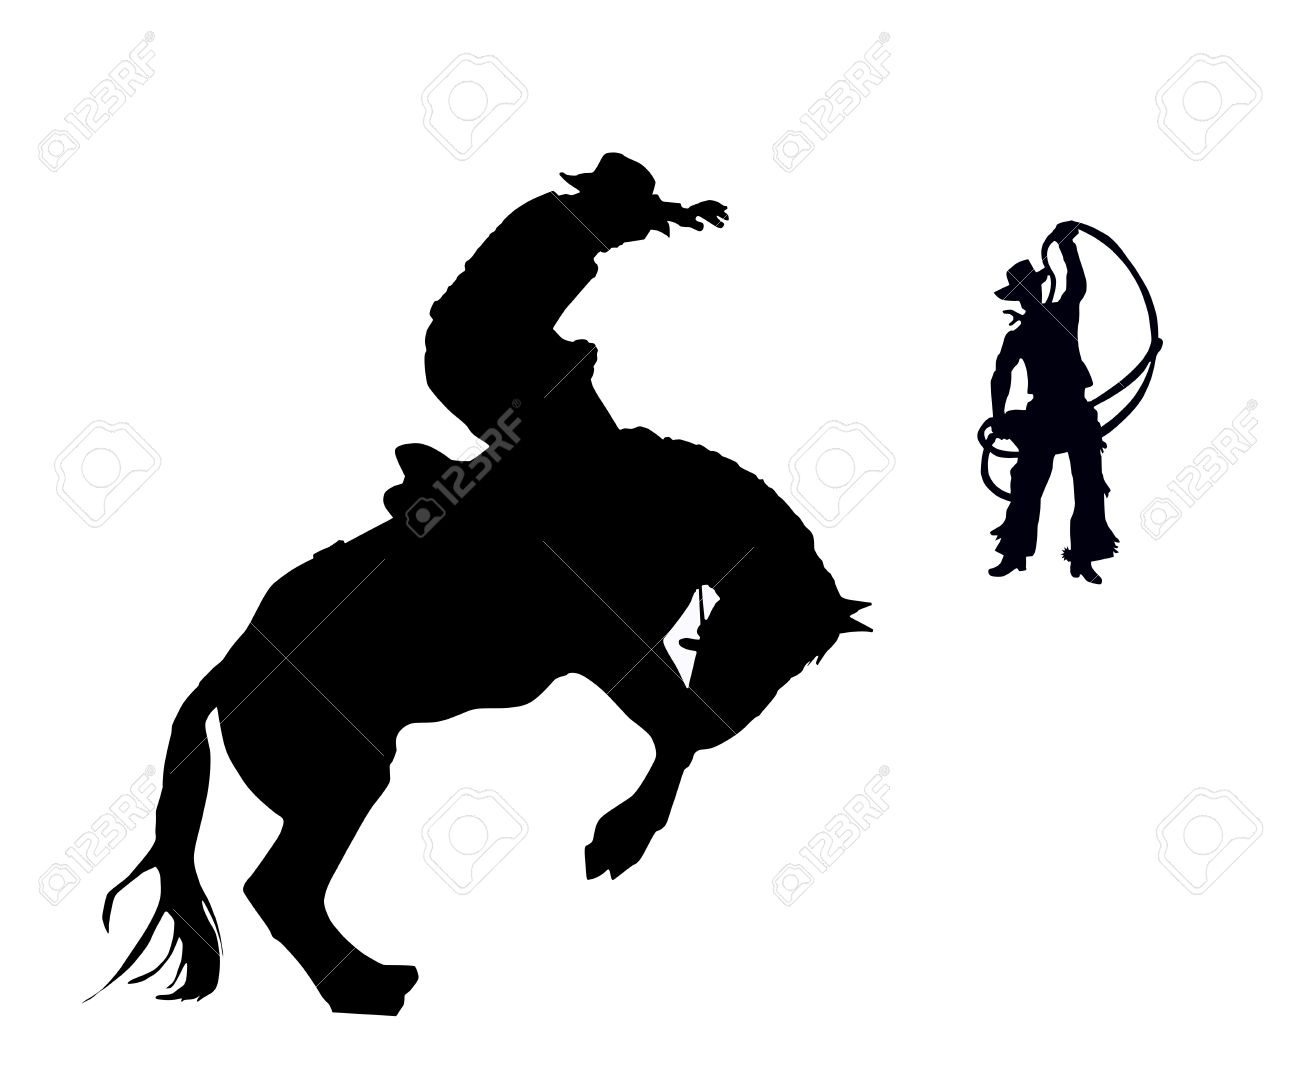 Western Horse Riding Clipart Vector - the rider and